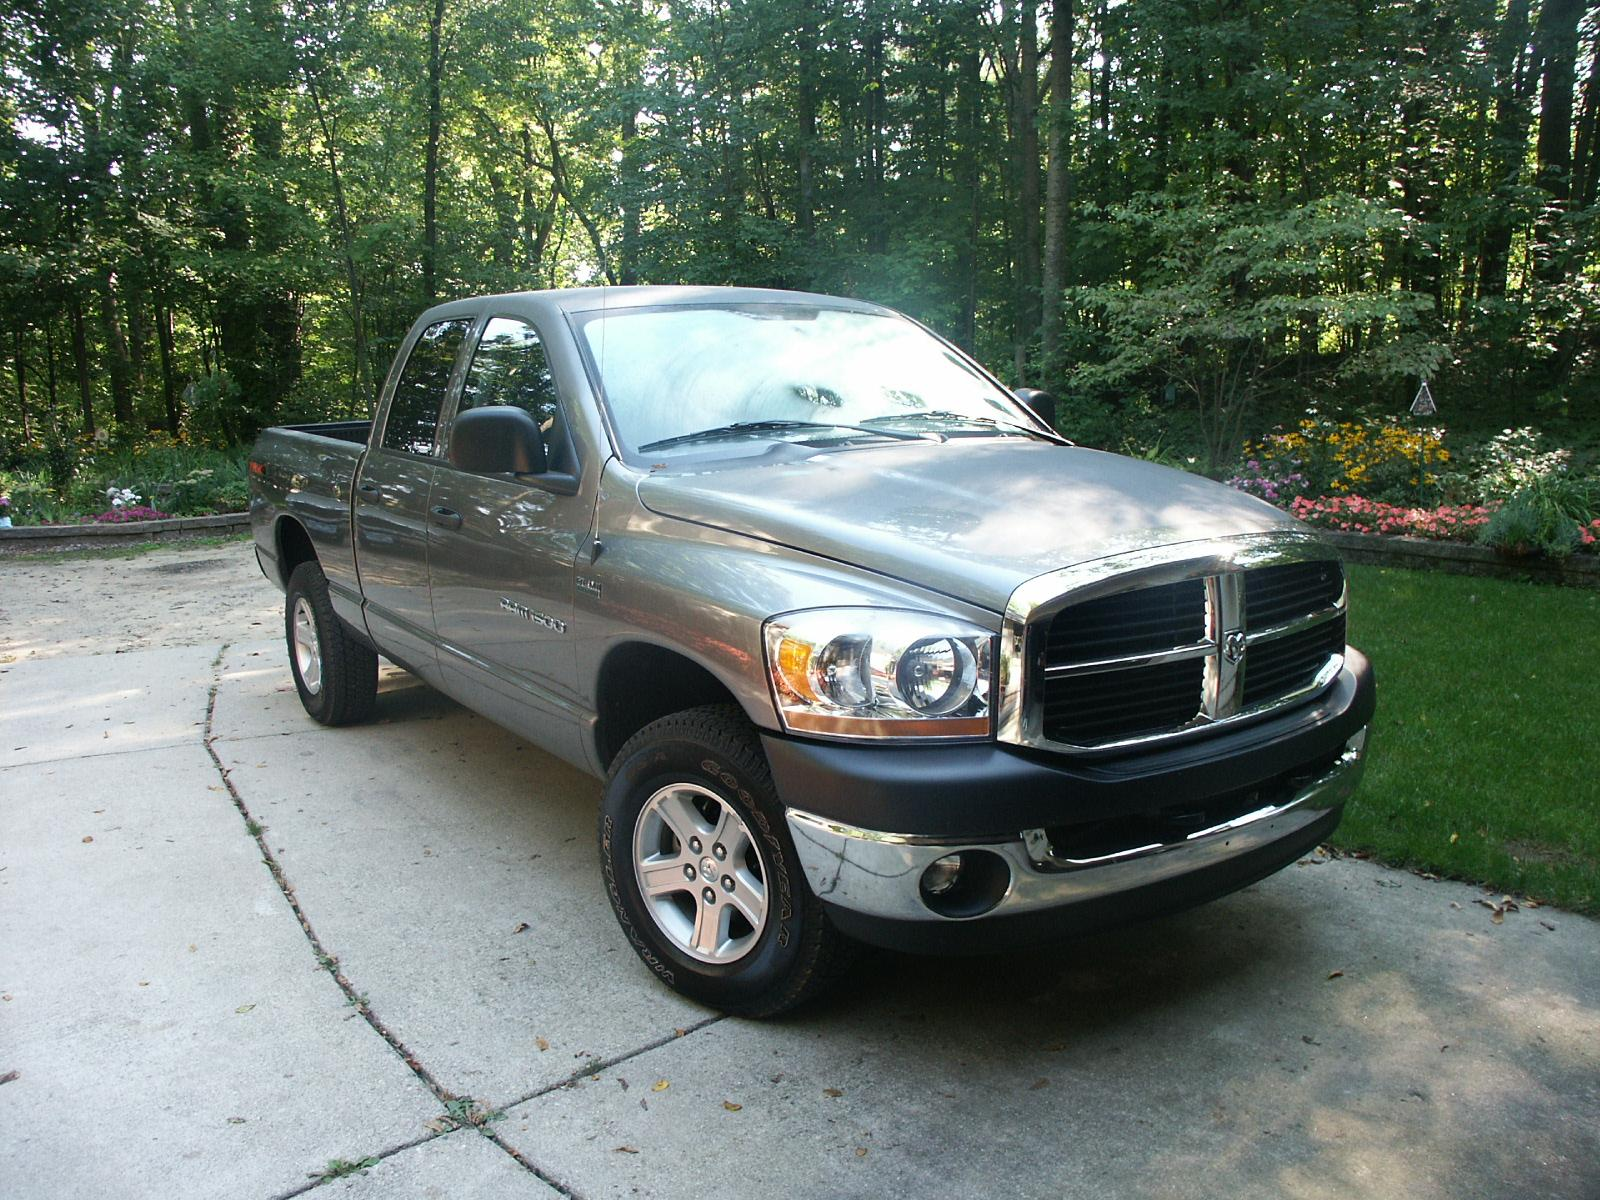 2006 Dodge Ram1500 SLT Quad Cab 4x4 Review